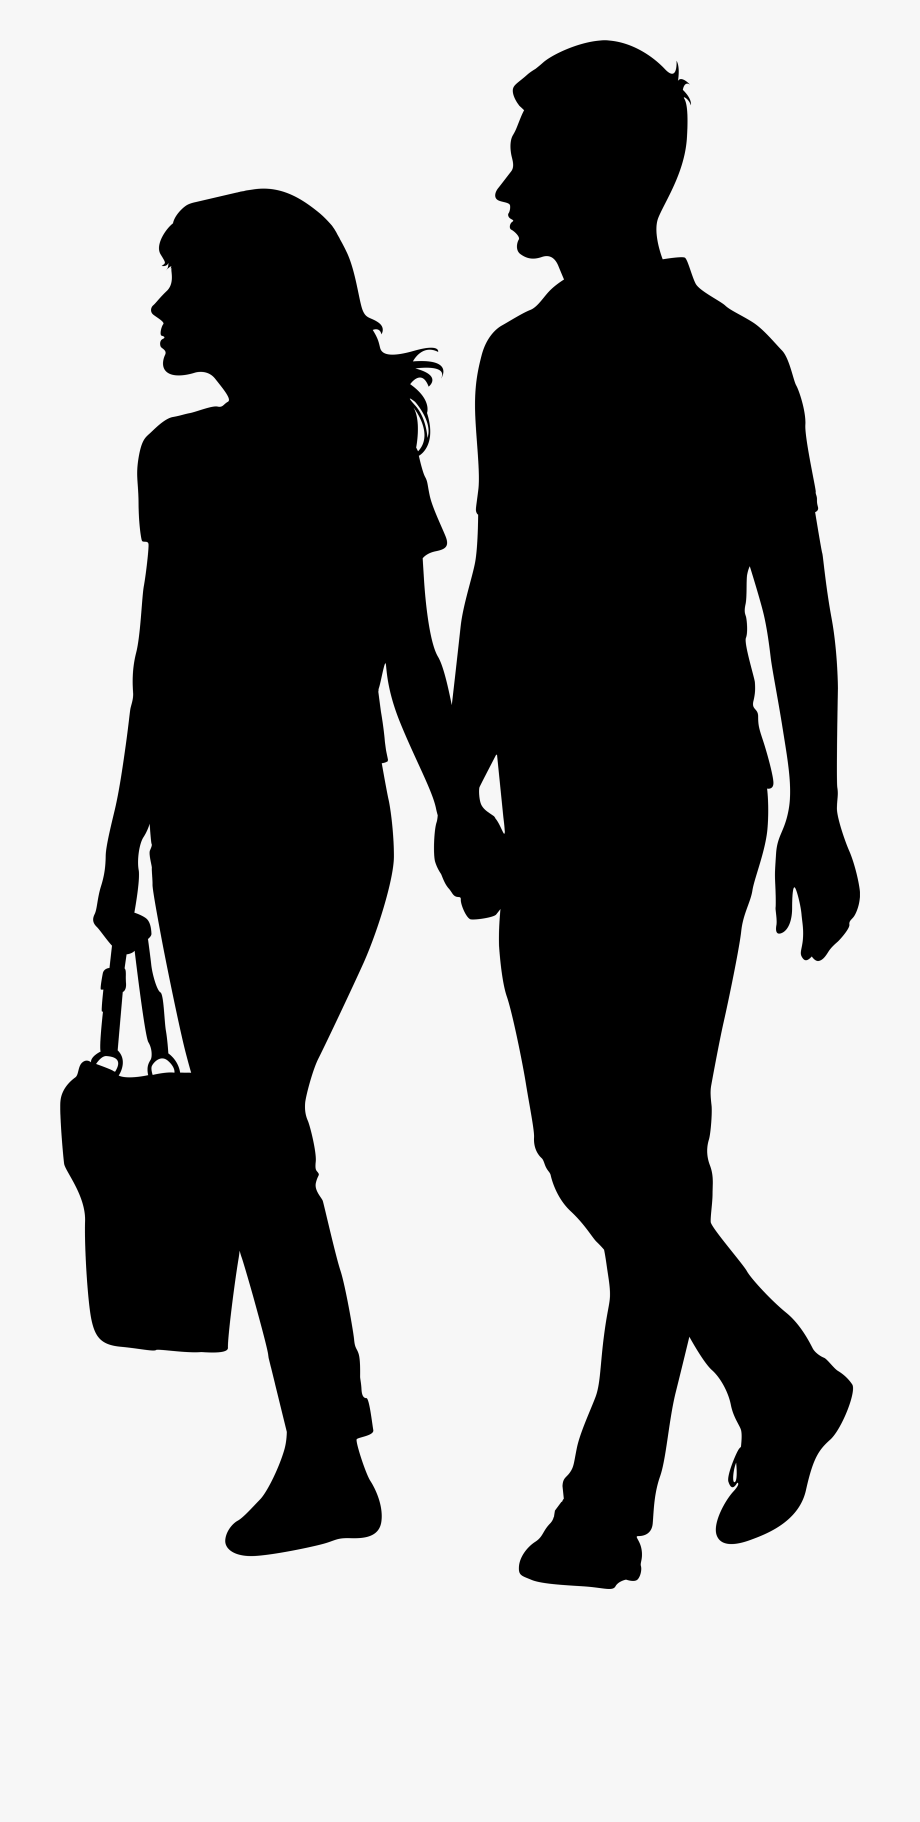 Silhouette clipart transparent background banner stock Walk Clipart Transparent Background Person - People Walking ... banner stock